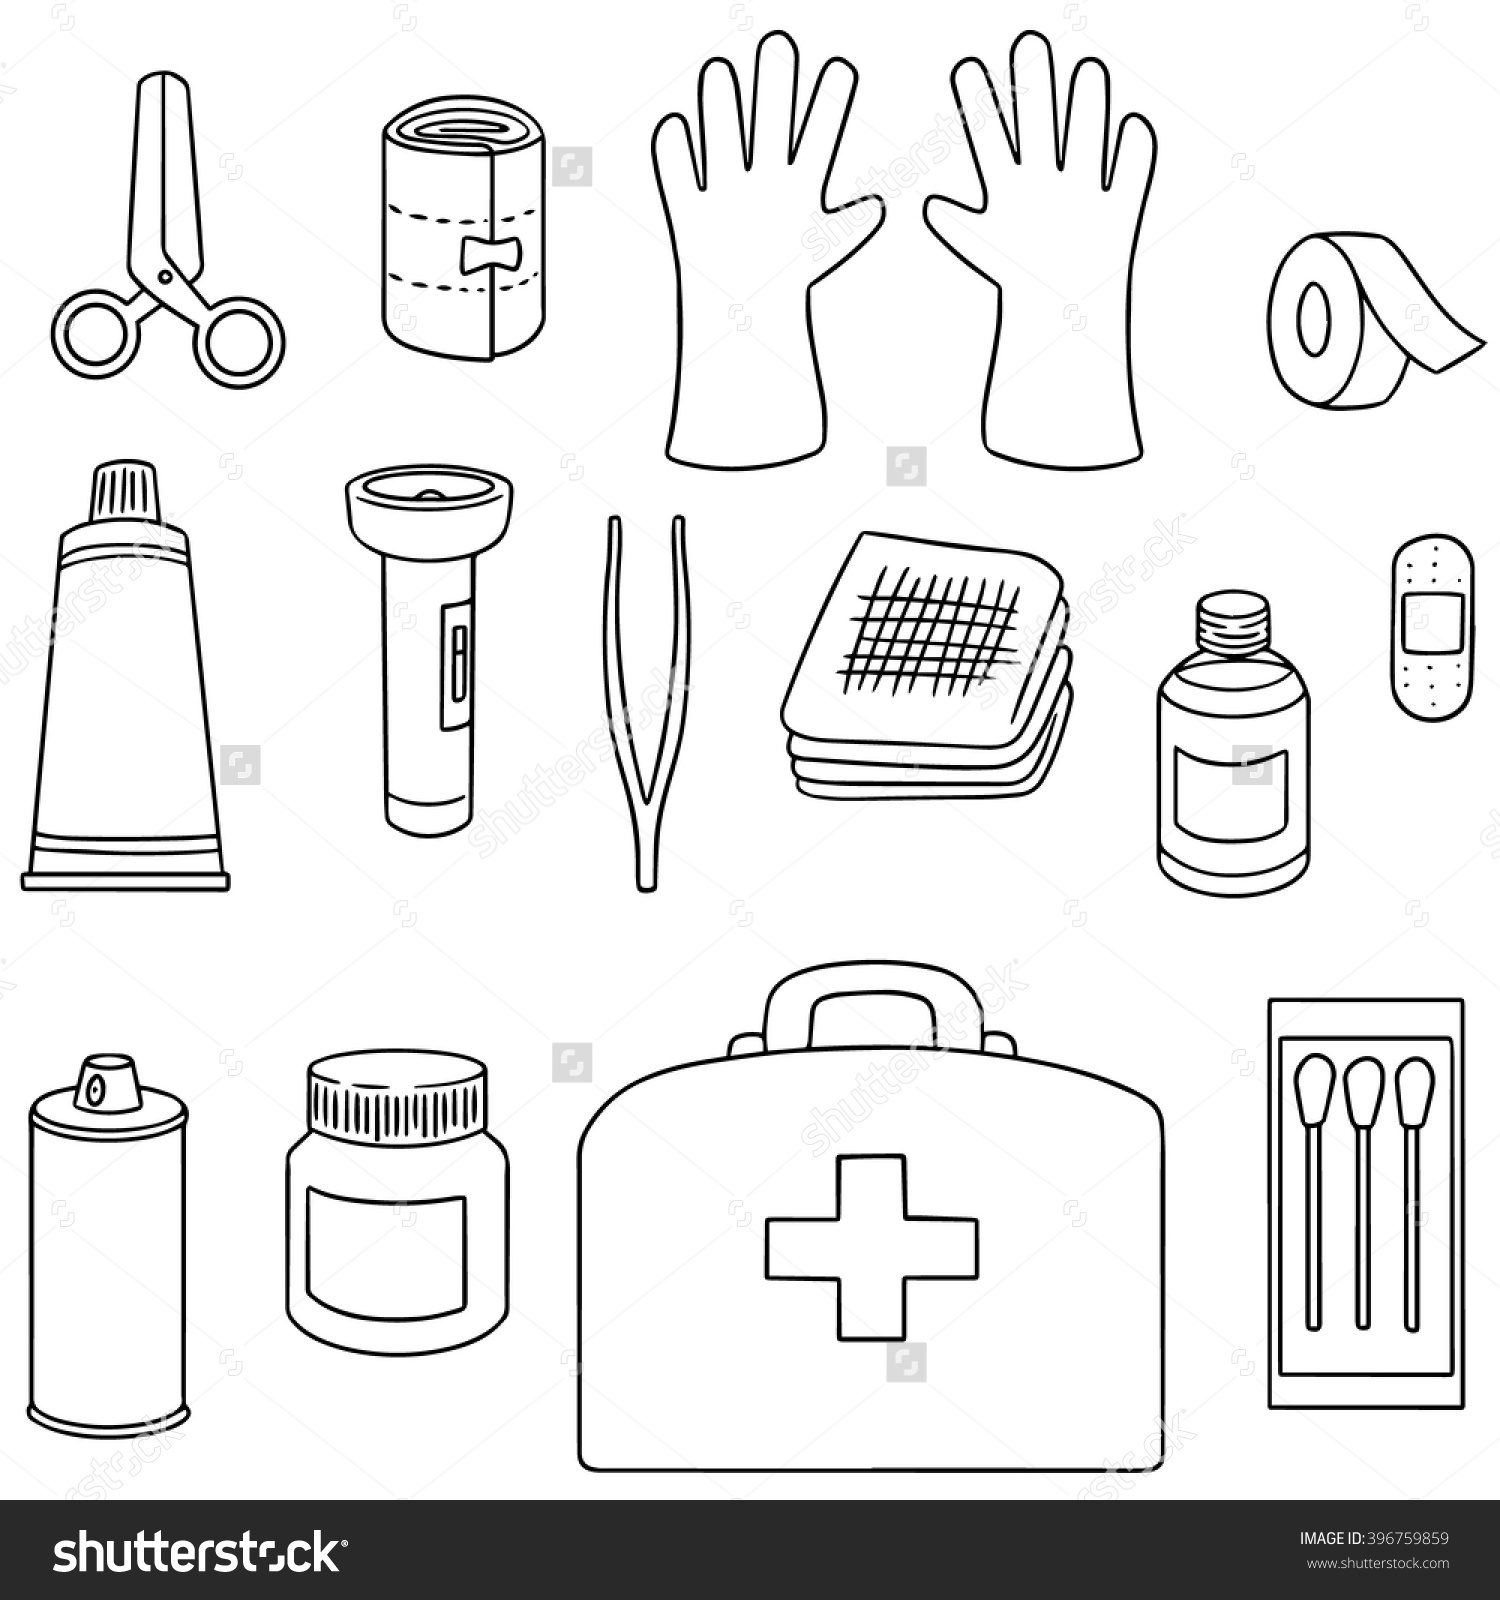 First Aid Drawing at GetDrawings.com